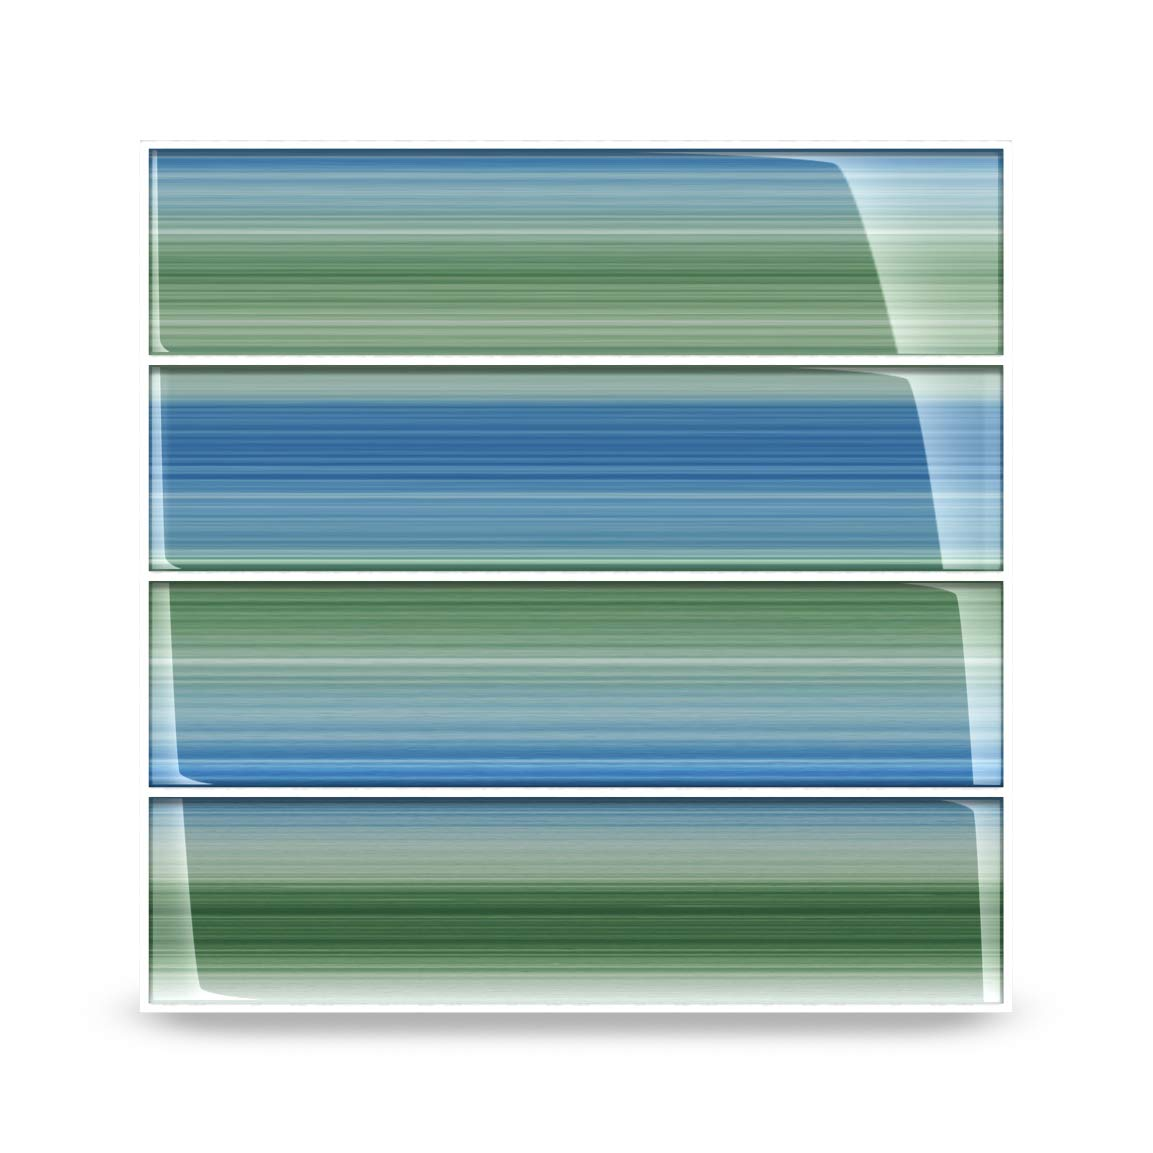 Green and Blue''Tidal'' Glass Subway Tile for Kitchen Backsplash or Bathroom, 3x12